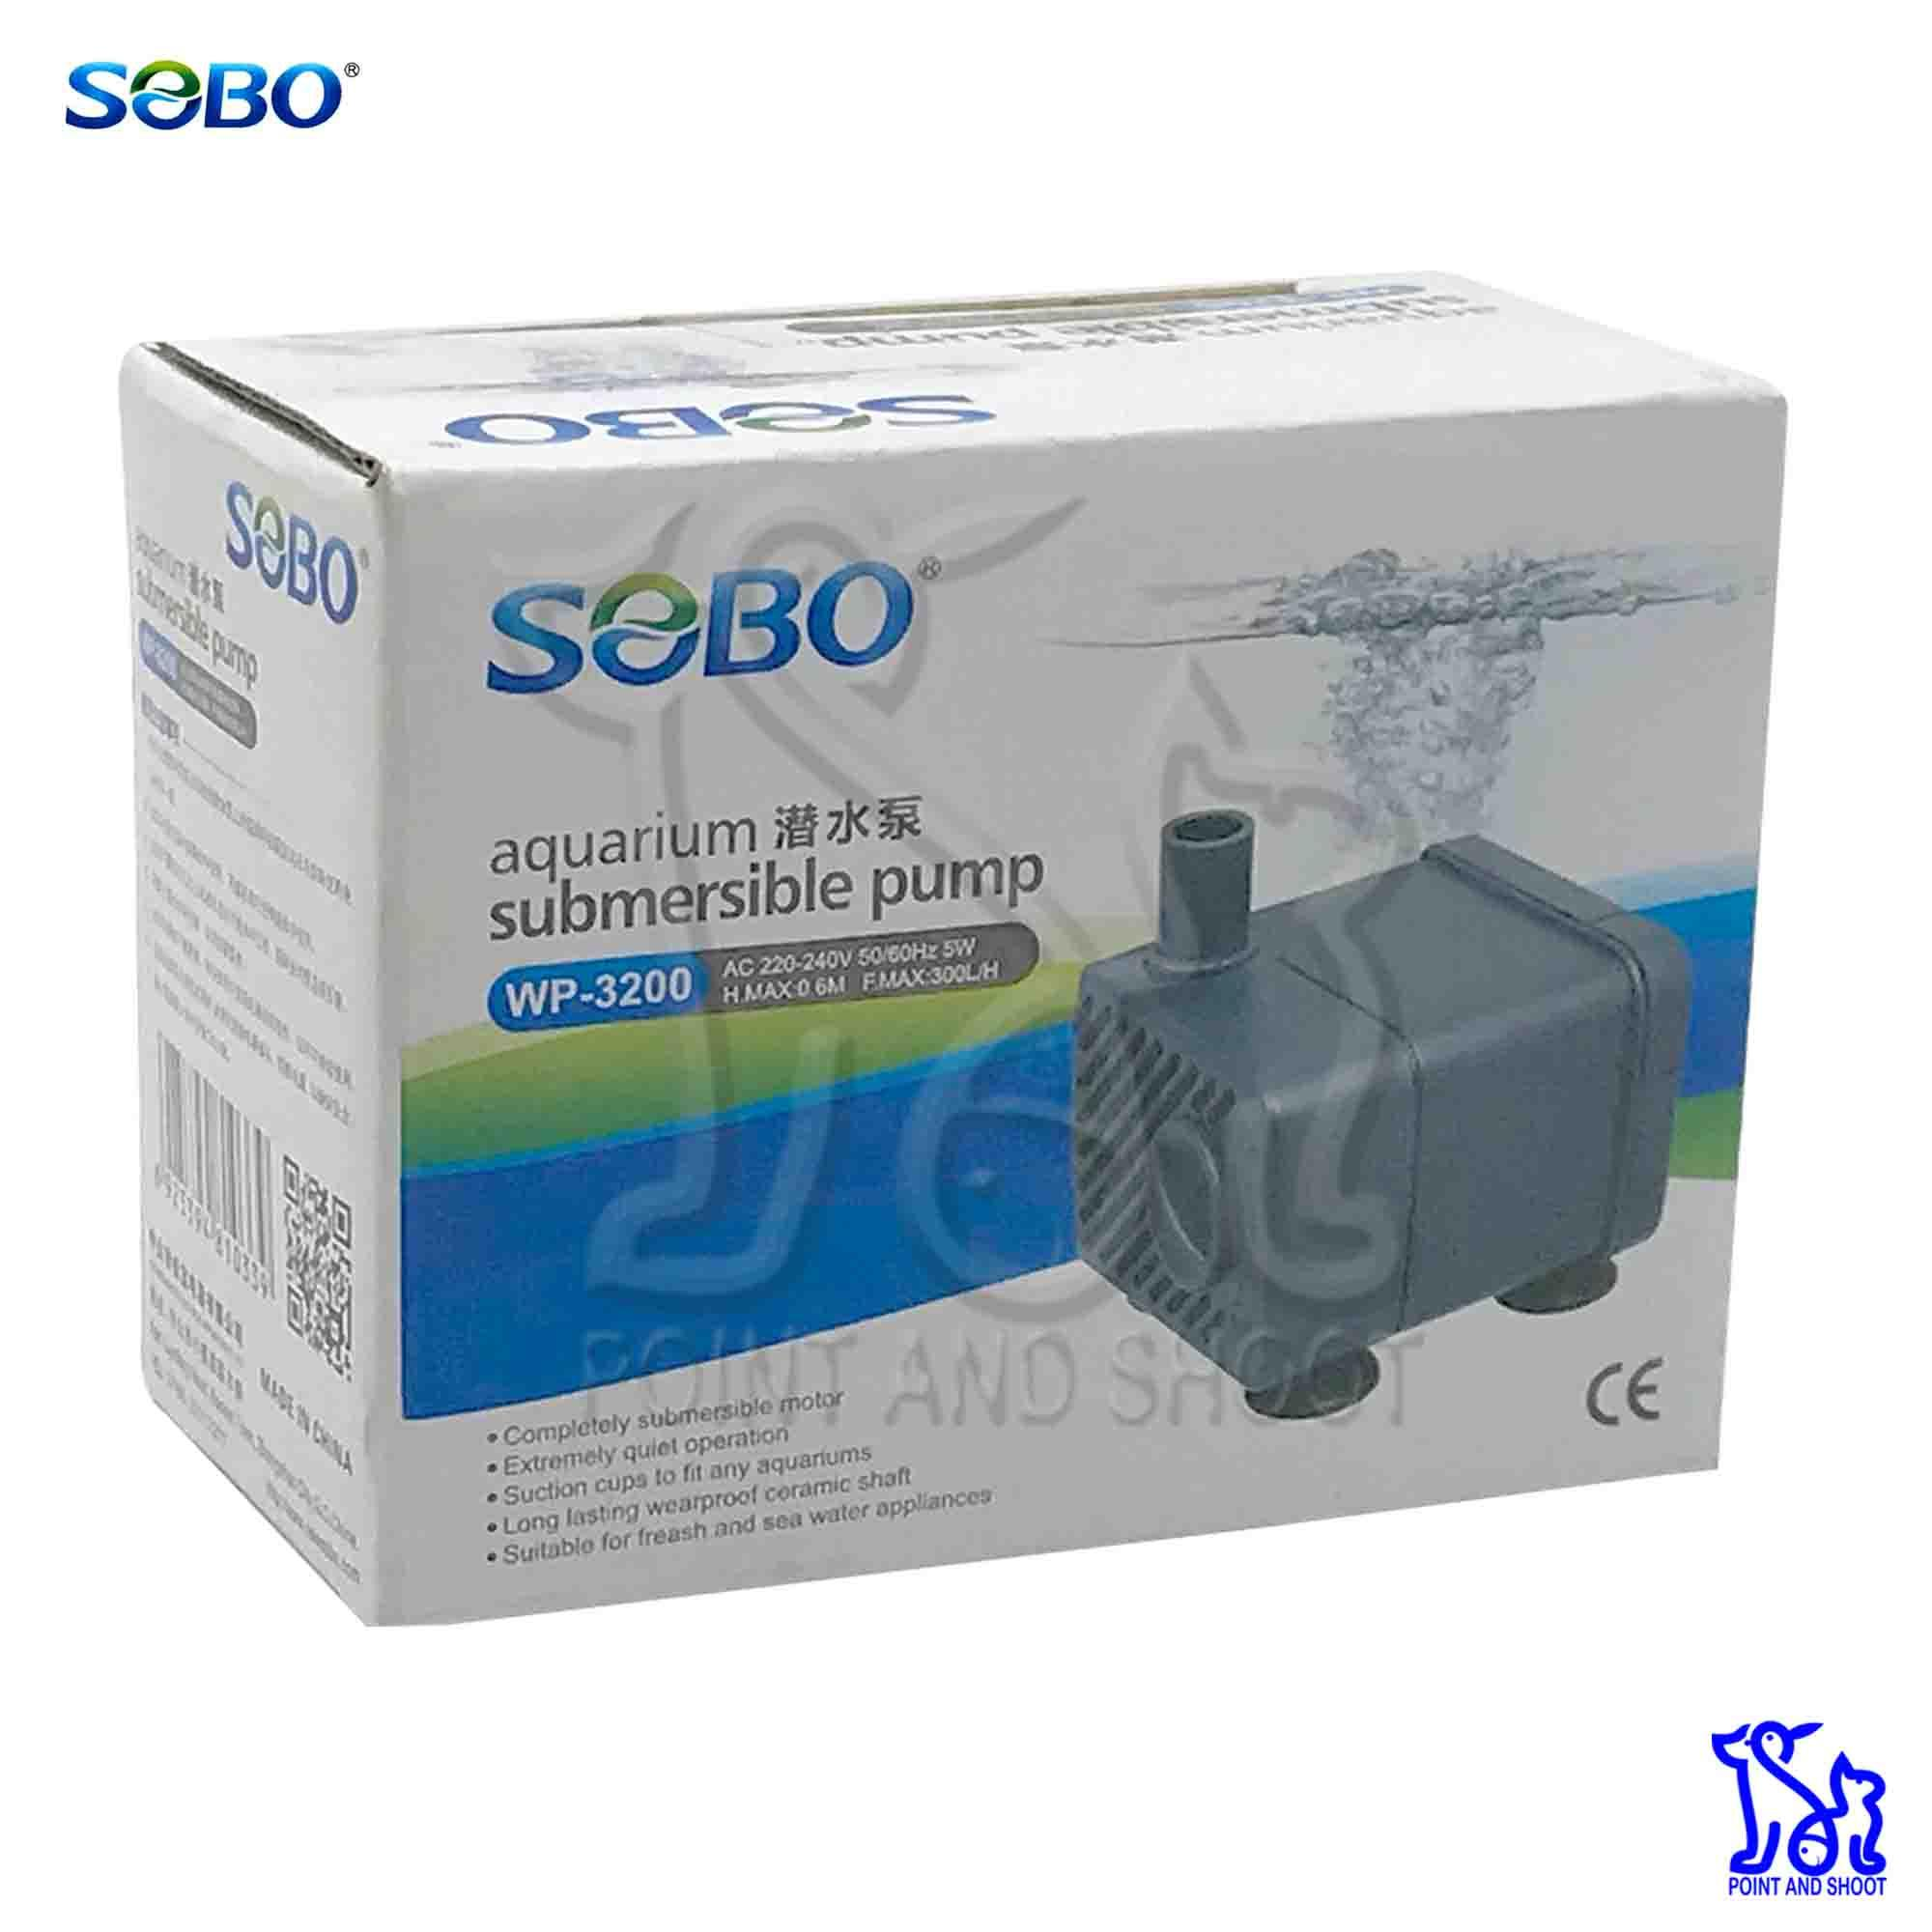 Sobo Submersible Pump WP-3200 AC 220-240V 5W